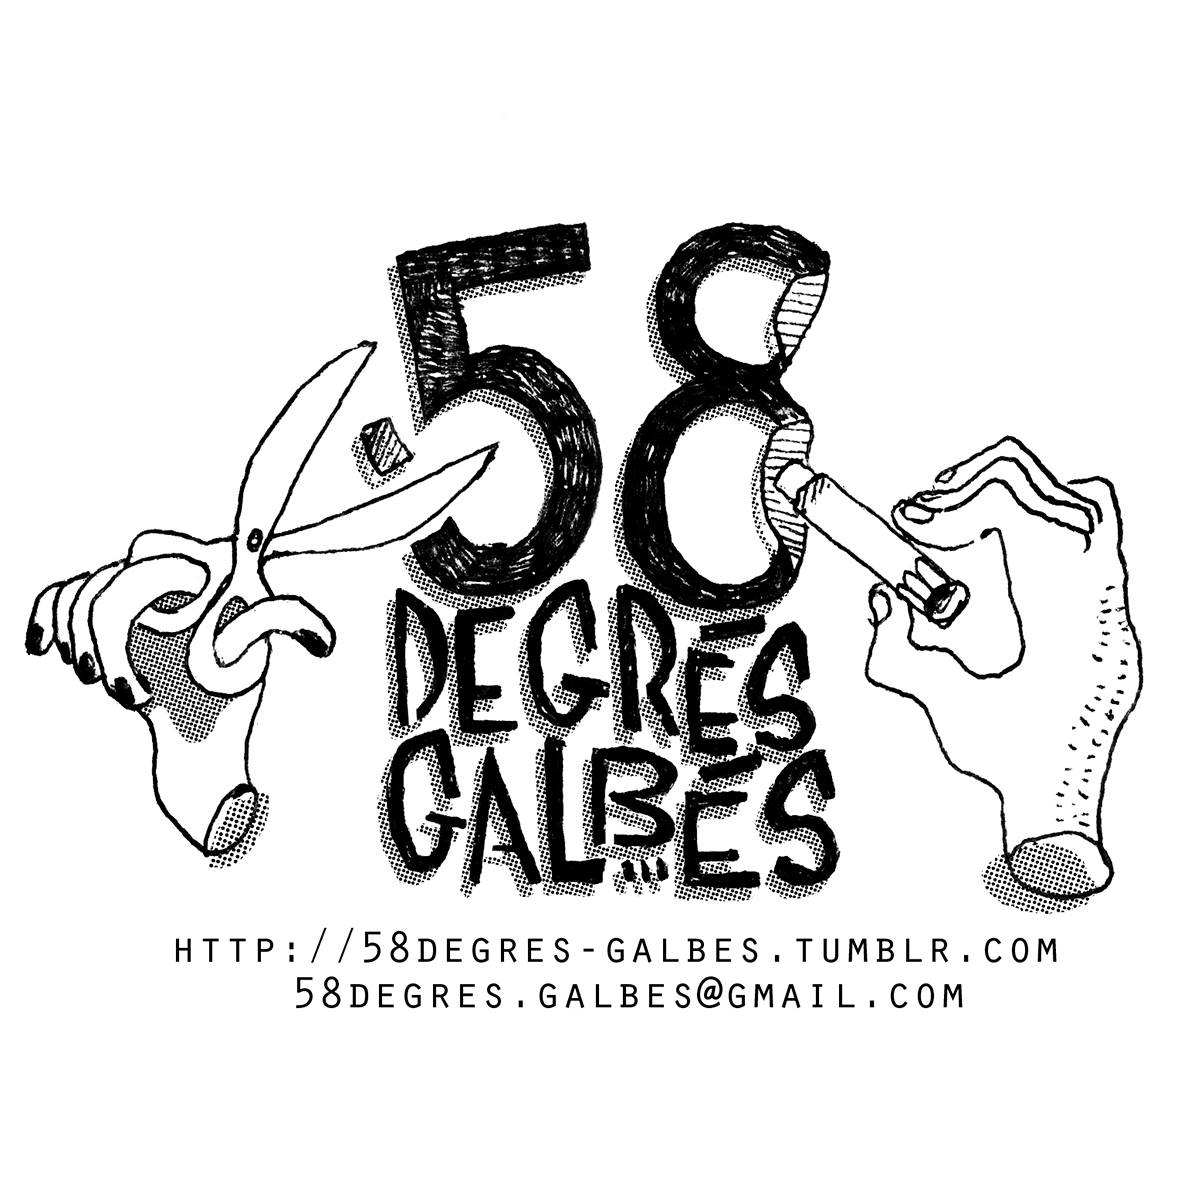 58degresgalbes